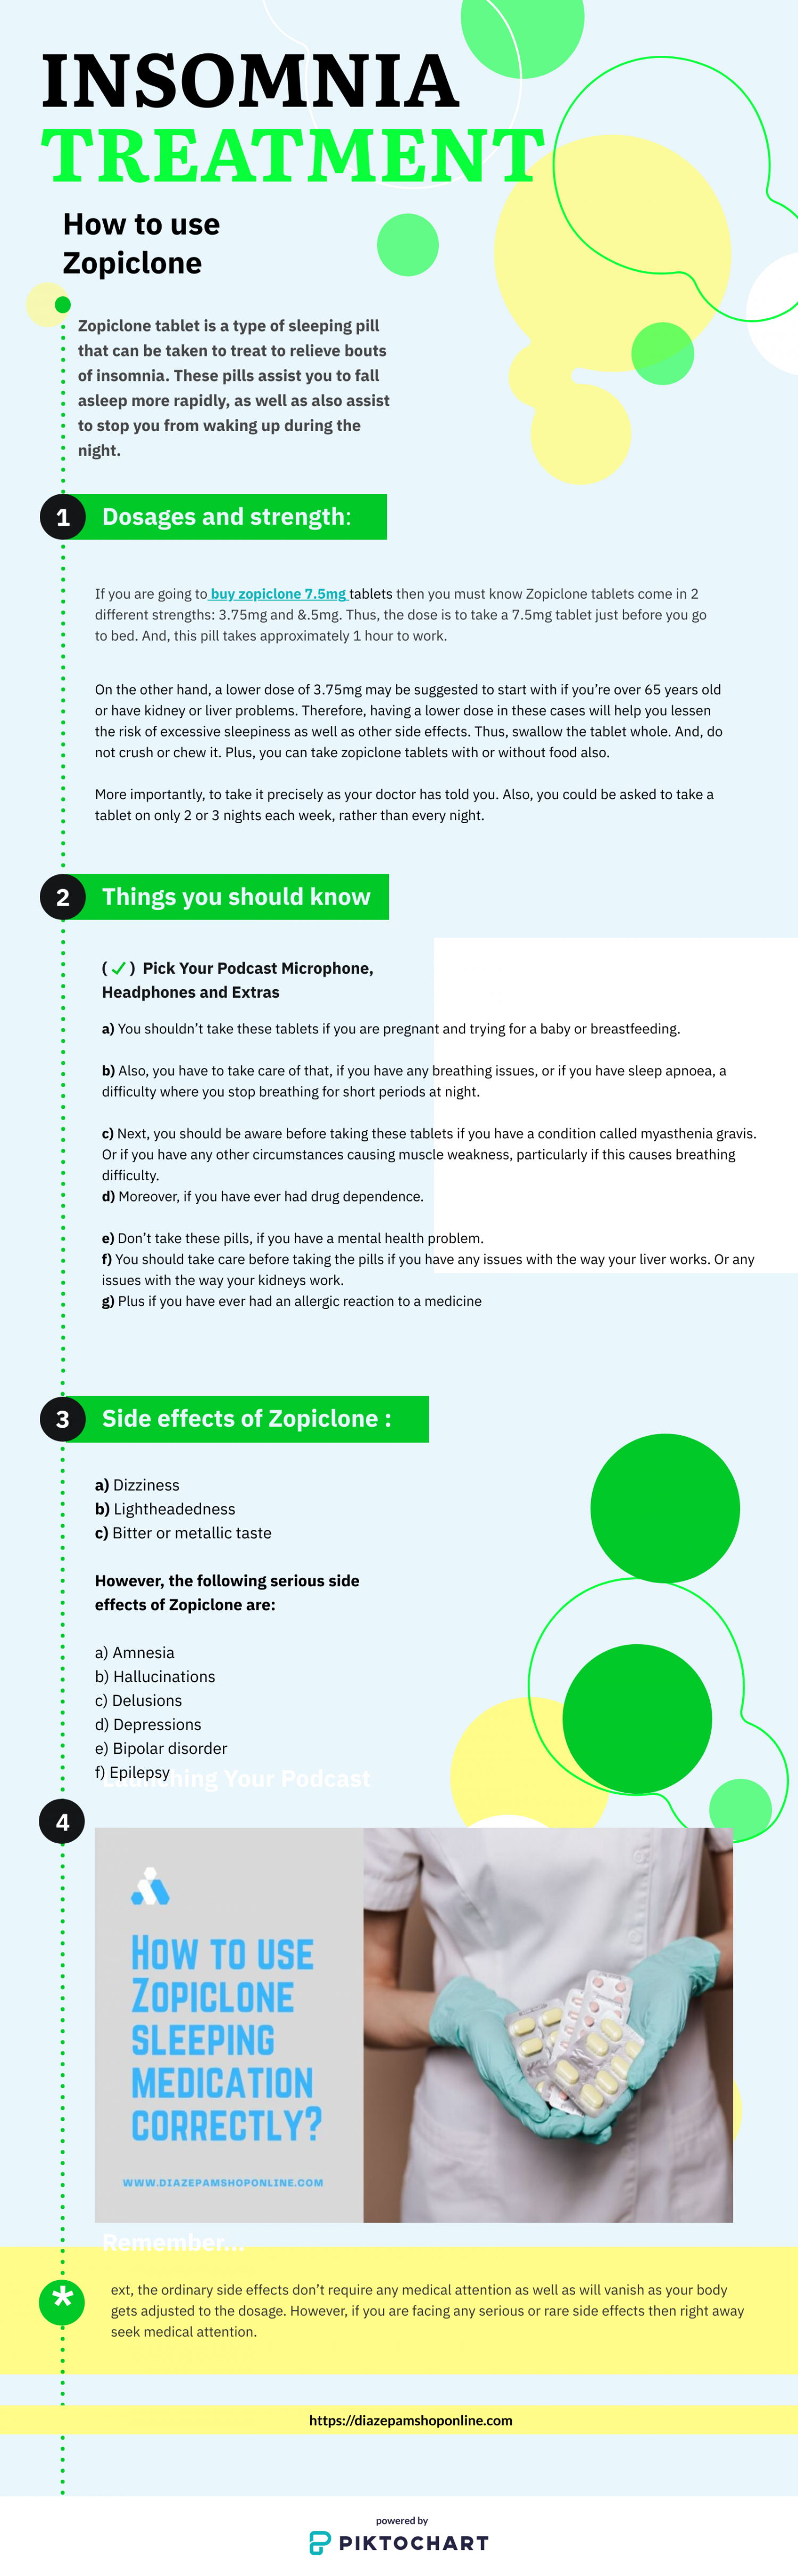 How to use Zopiclone sleeping medication correctly Infographic